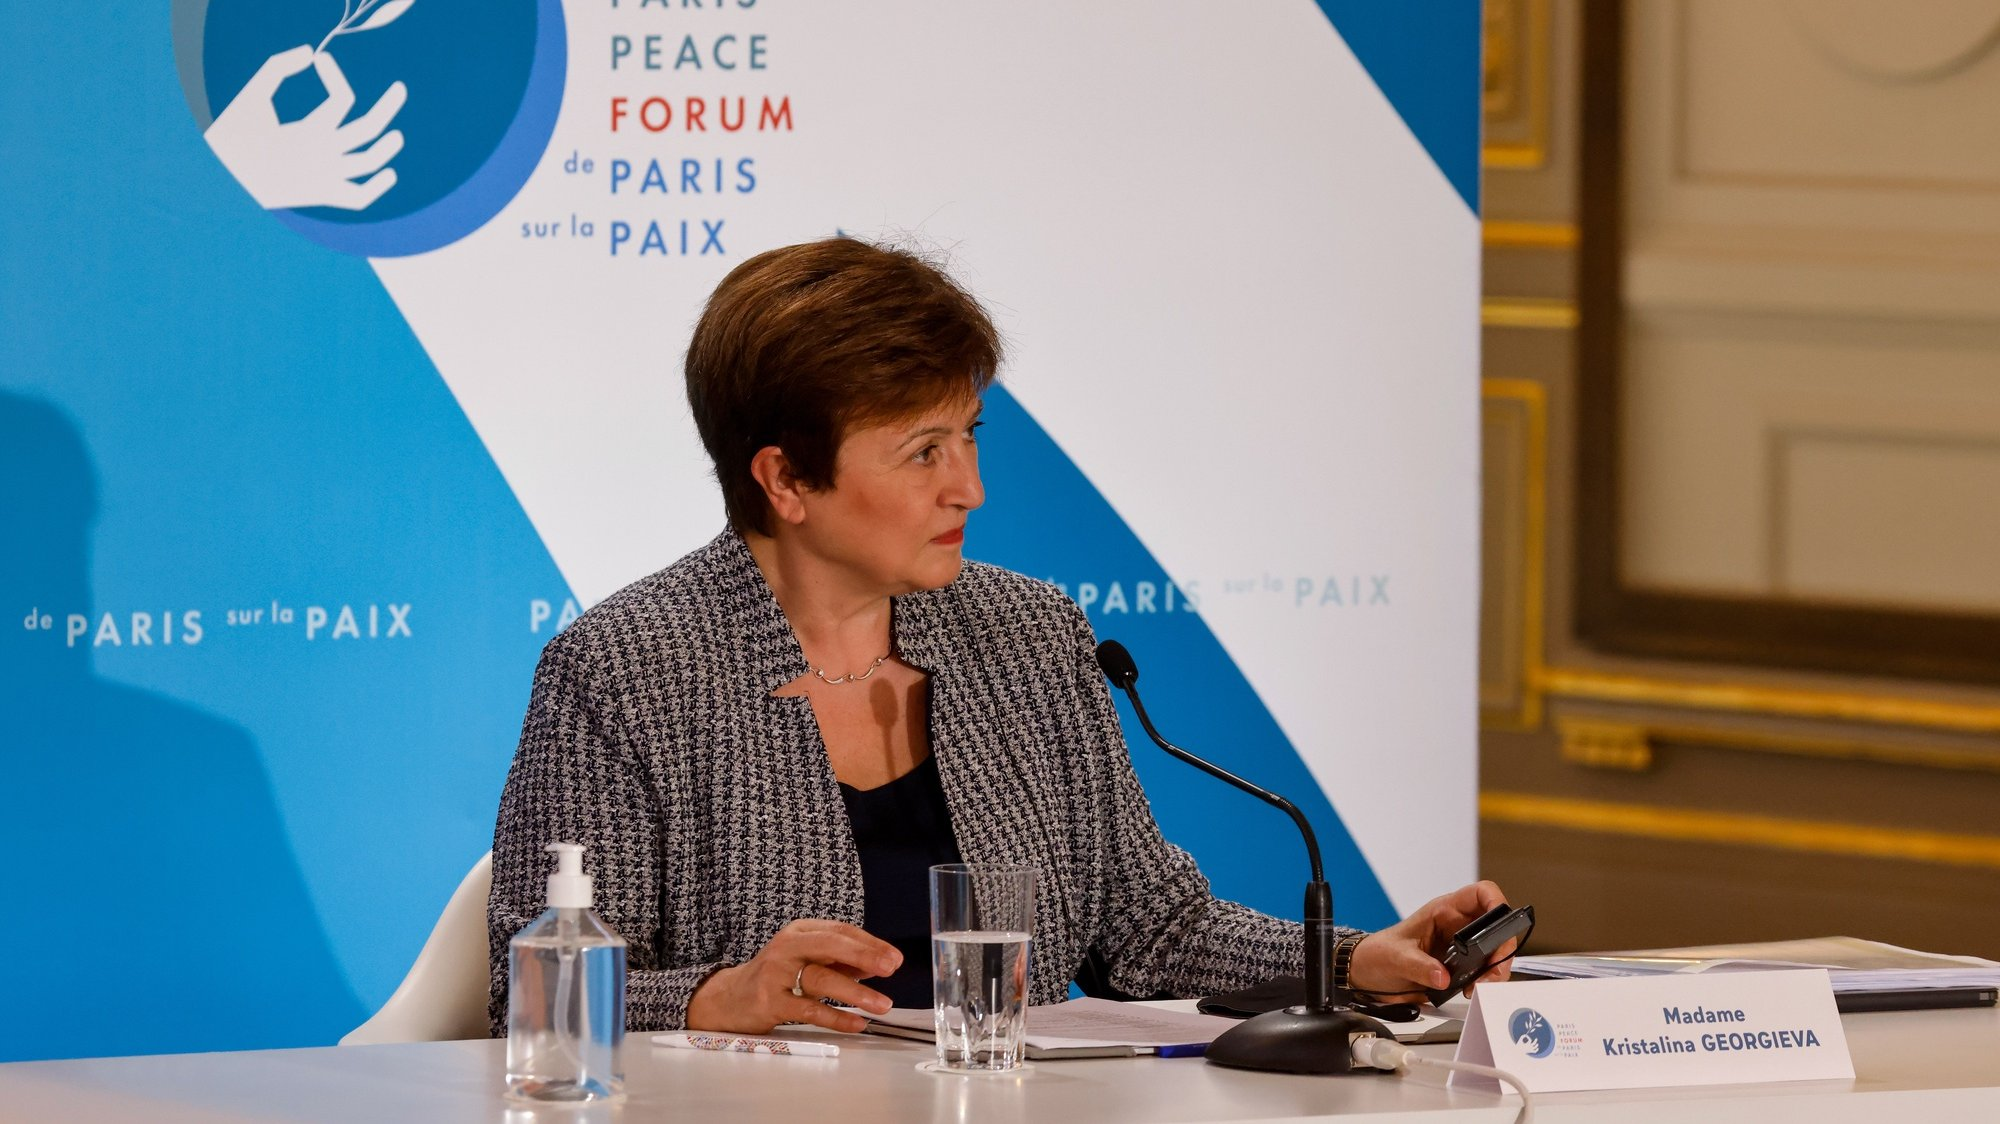 epa08815835 International Monetary Fund Managing Director Kristalina Georgieva attends The Paris Peace Forum at The Elysee Palace in Paris, France, 12 November 2020. Organisers of the French Paris Peace Forum say several countries and foundations are set to pledge more than 500 million US dollars for a global pool aimed at ensuring equitable access to coronavirus tests, treatment and vaccines for all nations.  EPA/LUDOVIC MARIN / POOL  MAXPPP OUT